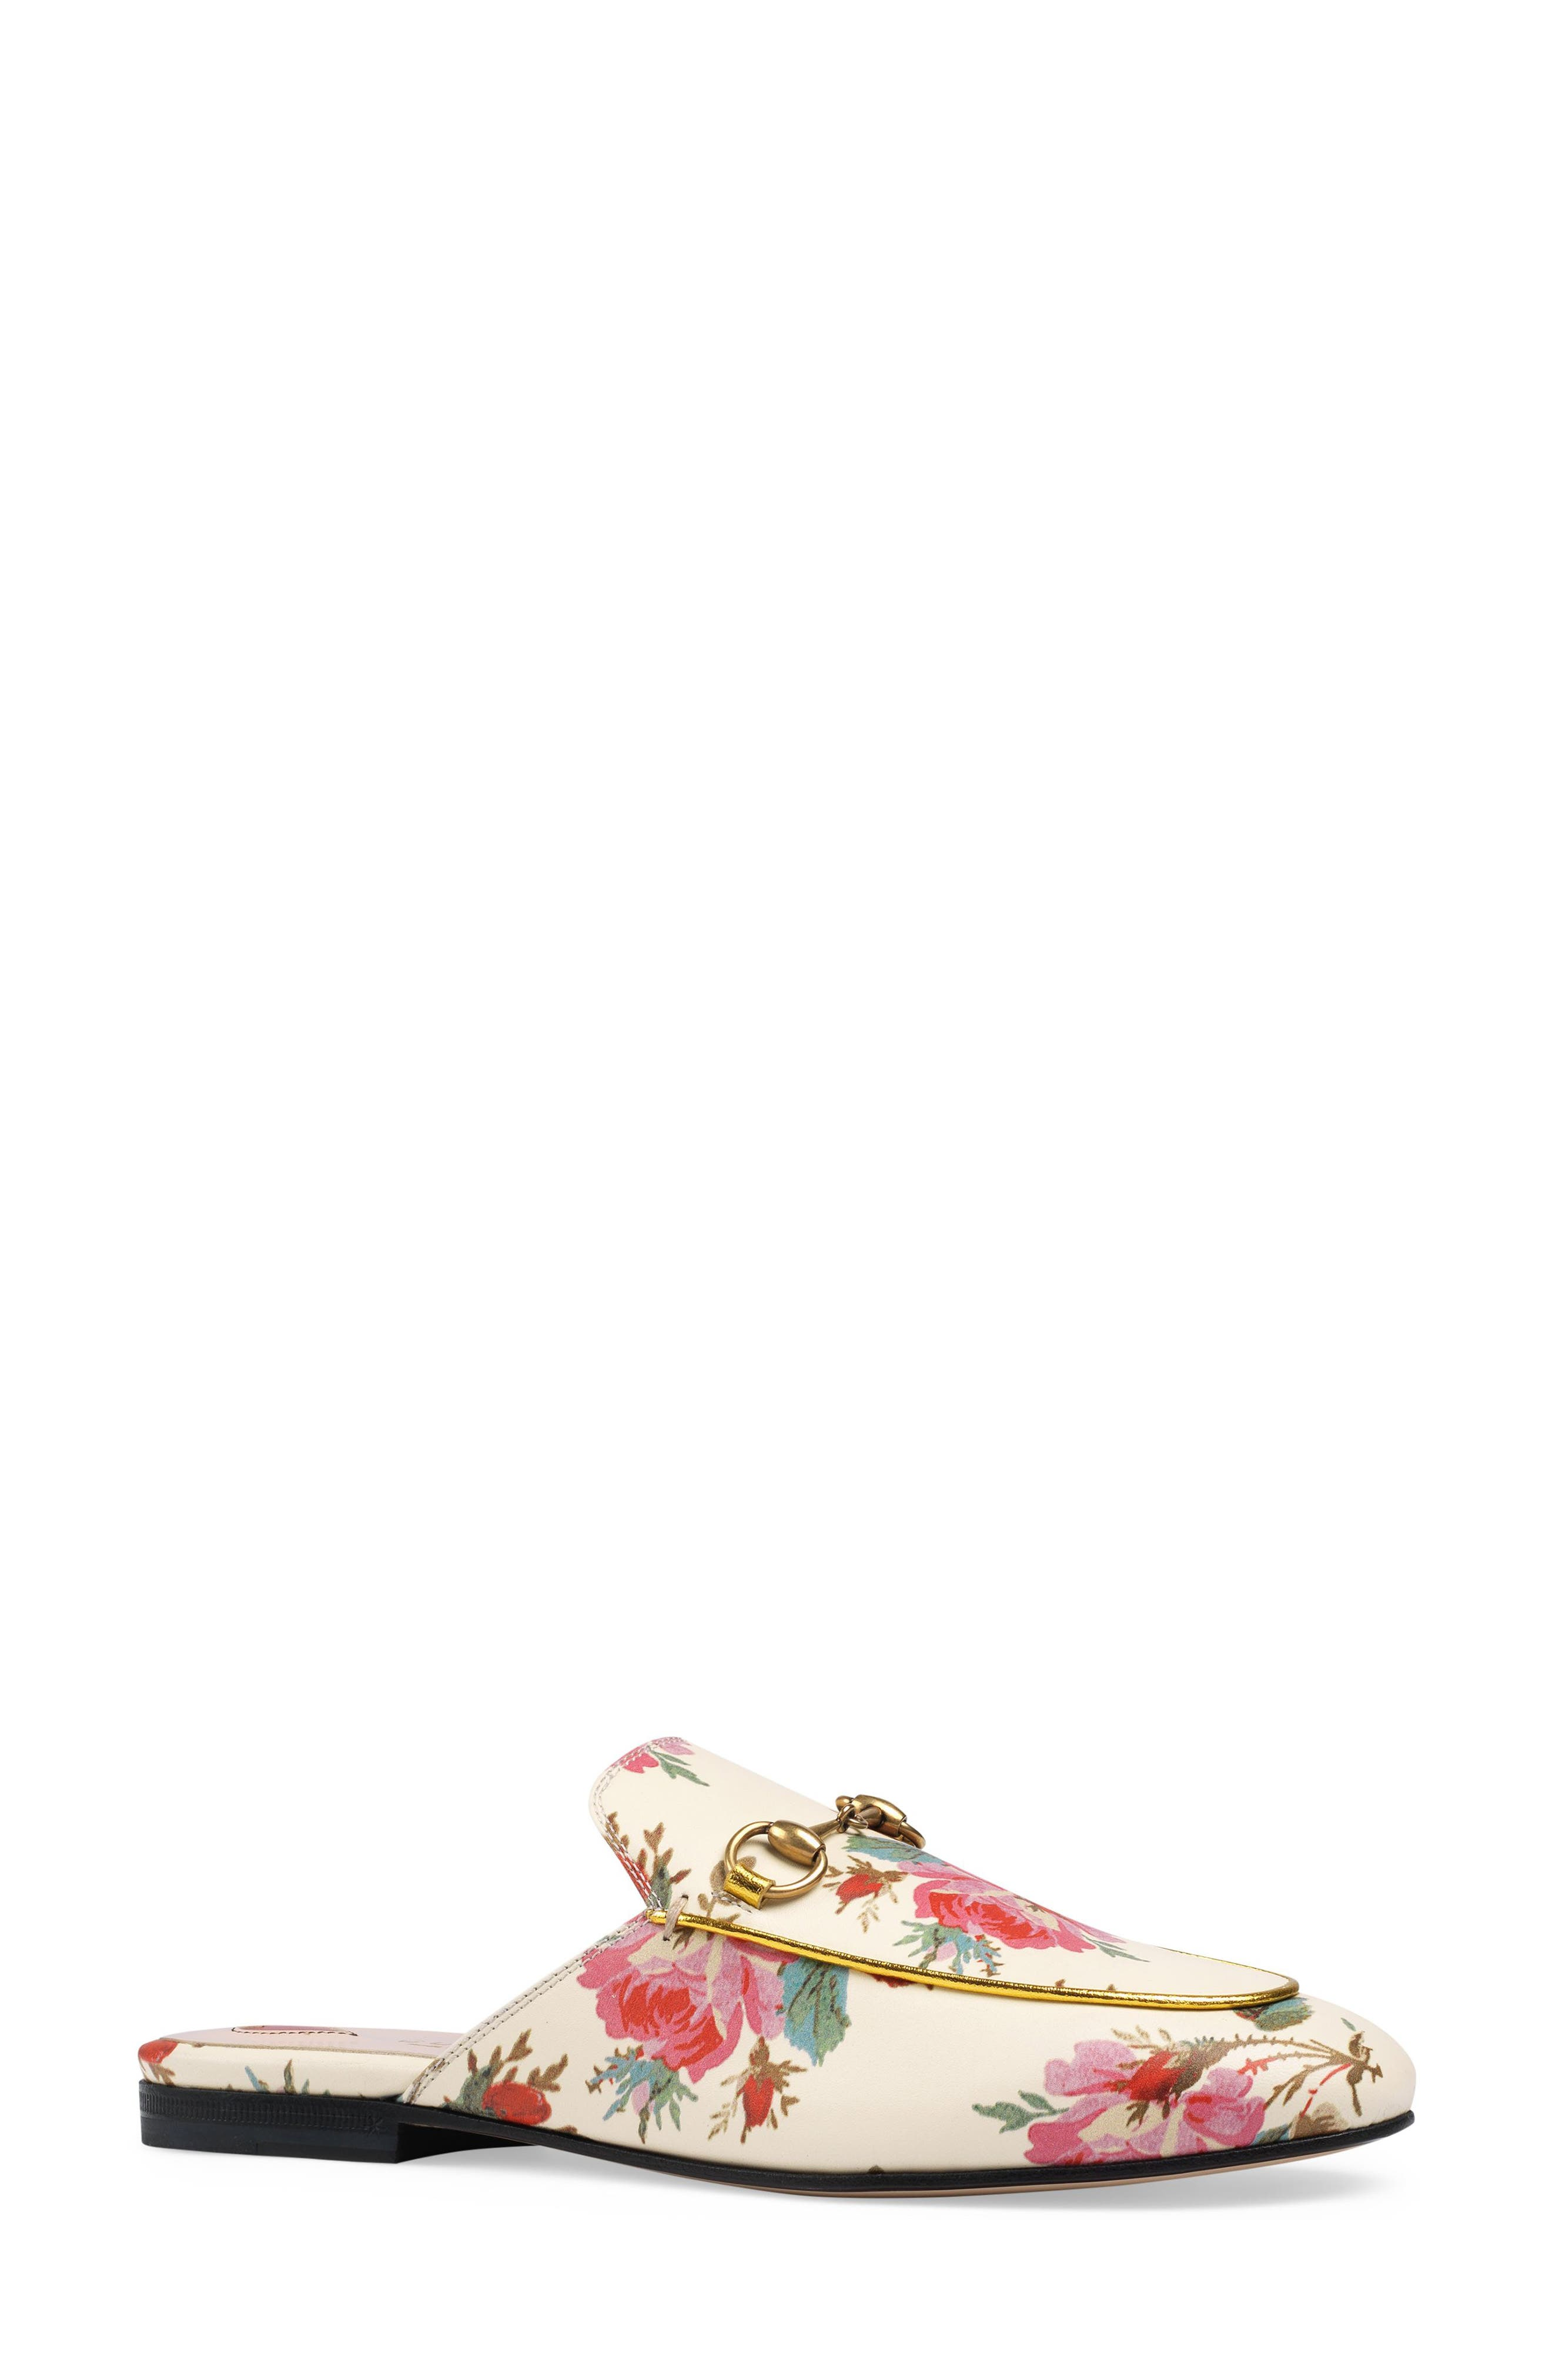 Alternate Image 1 Selected - Gucci Princetown Floral Loafer Mule (Women)